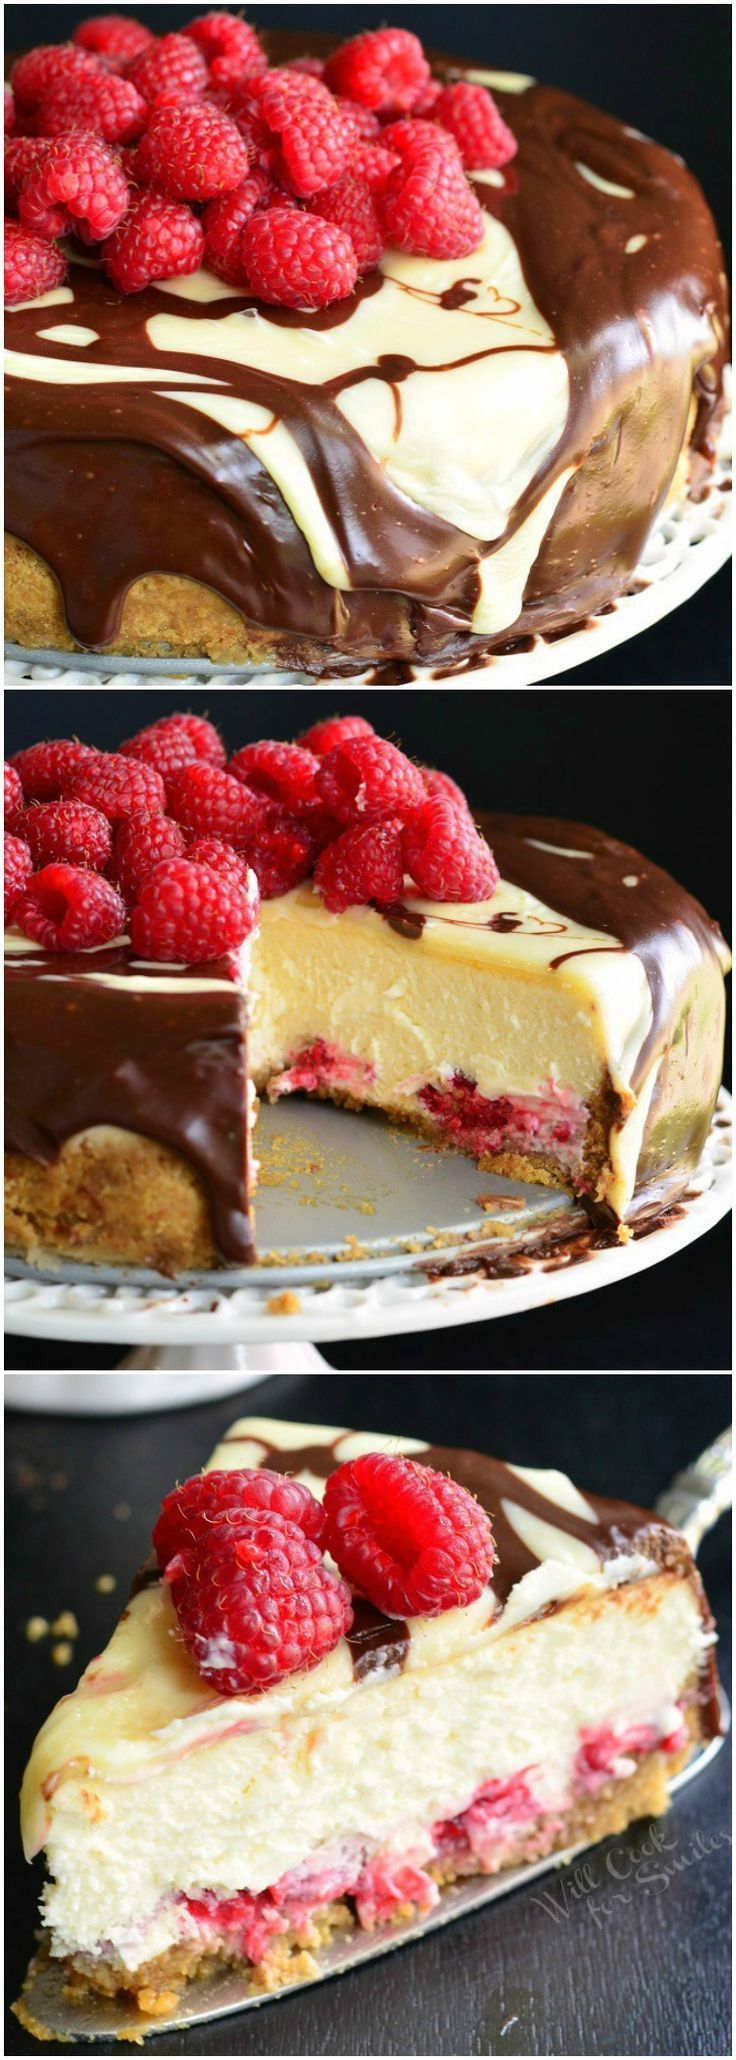 Double Chocolate Ganache and Raspberry Cheesecake | from http://willcookforsmiles.com #desserts #chocolate #cheesecake